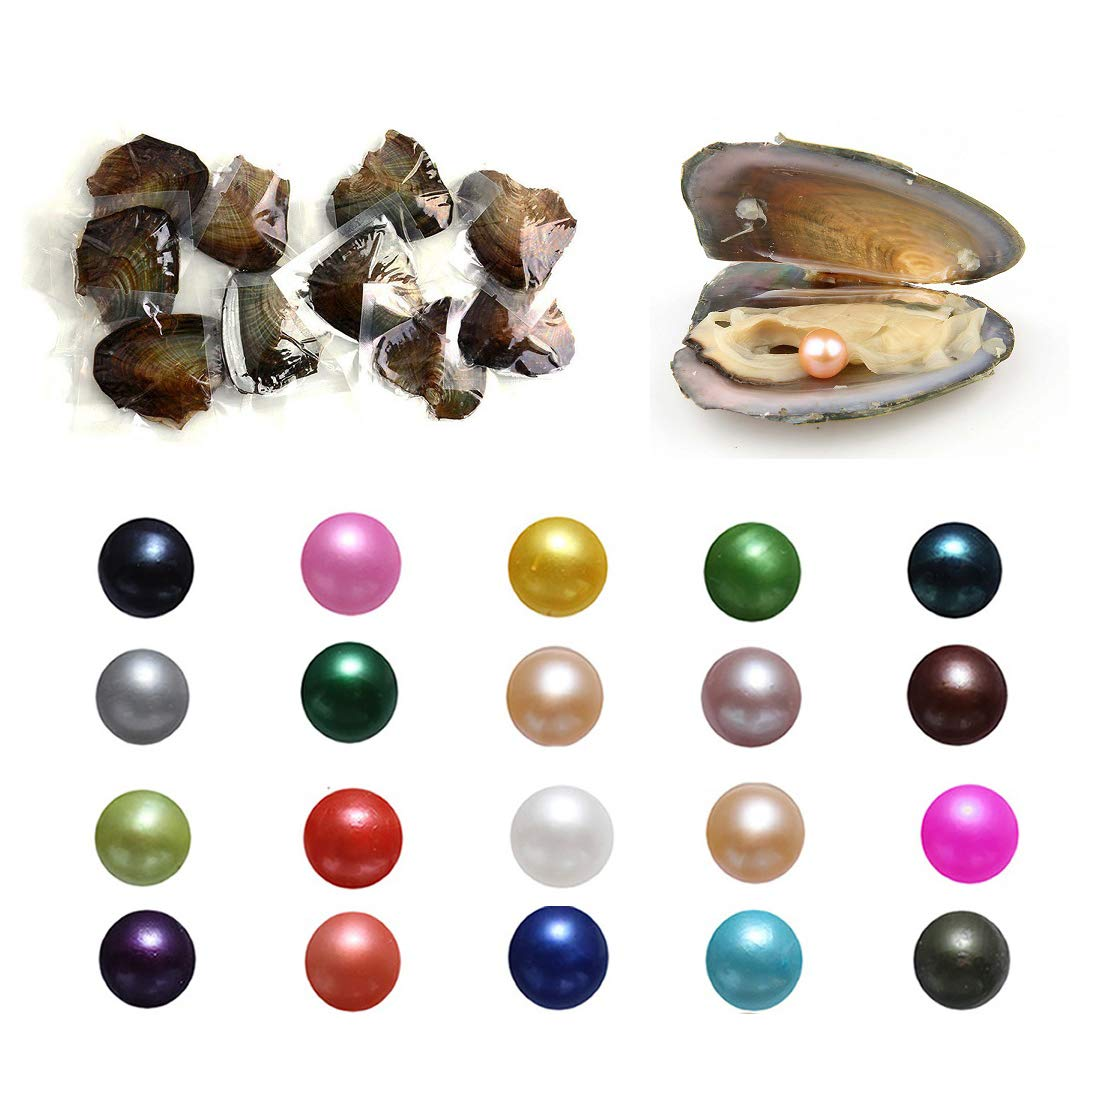 50PC Oysters with Pearls Inside, Freshwater Cultured Love Wish Pearl Oyster with Mixed Colors (7-8mm)